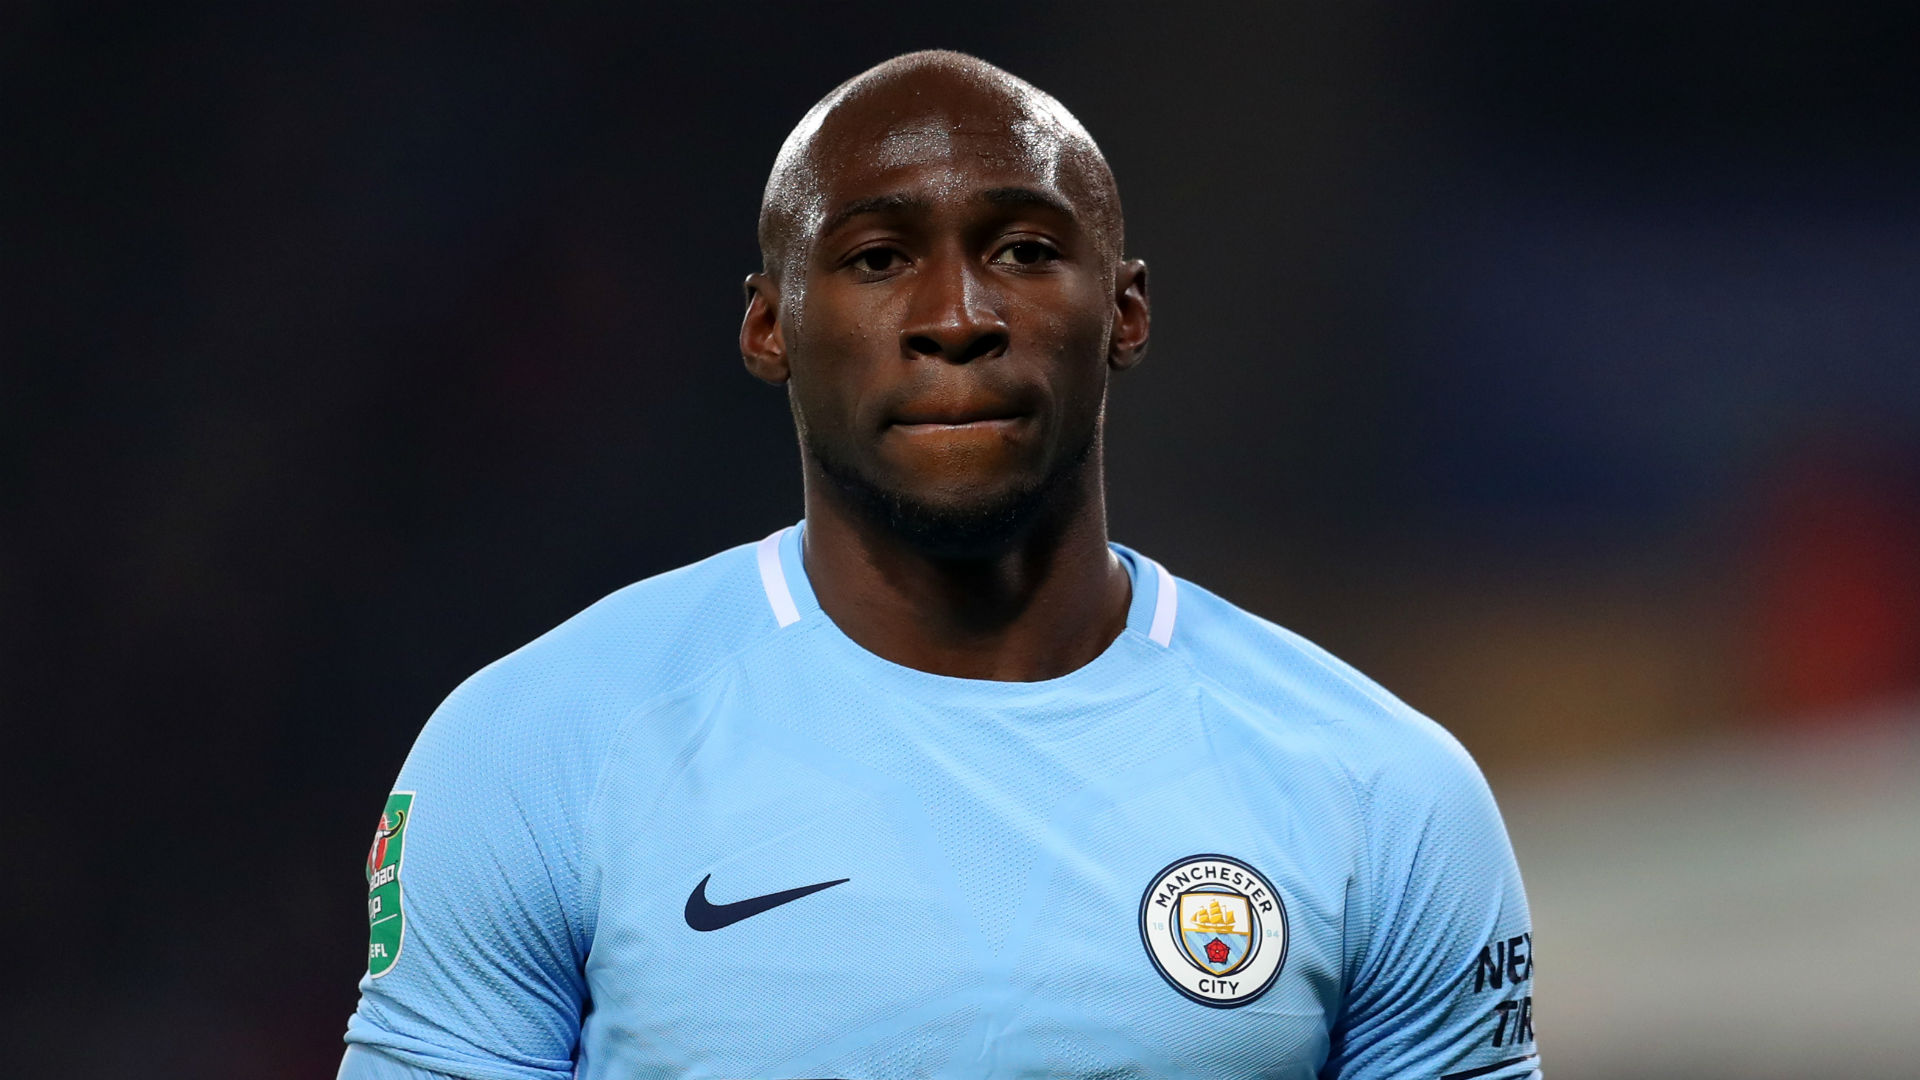 Manchester City news: Mangala handed one-year contract extension | Goal.com